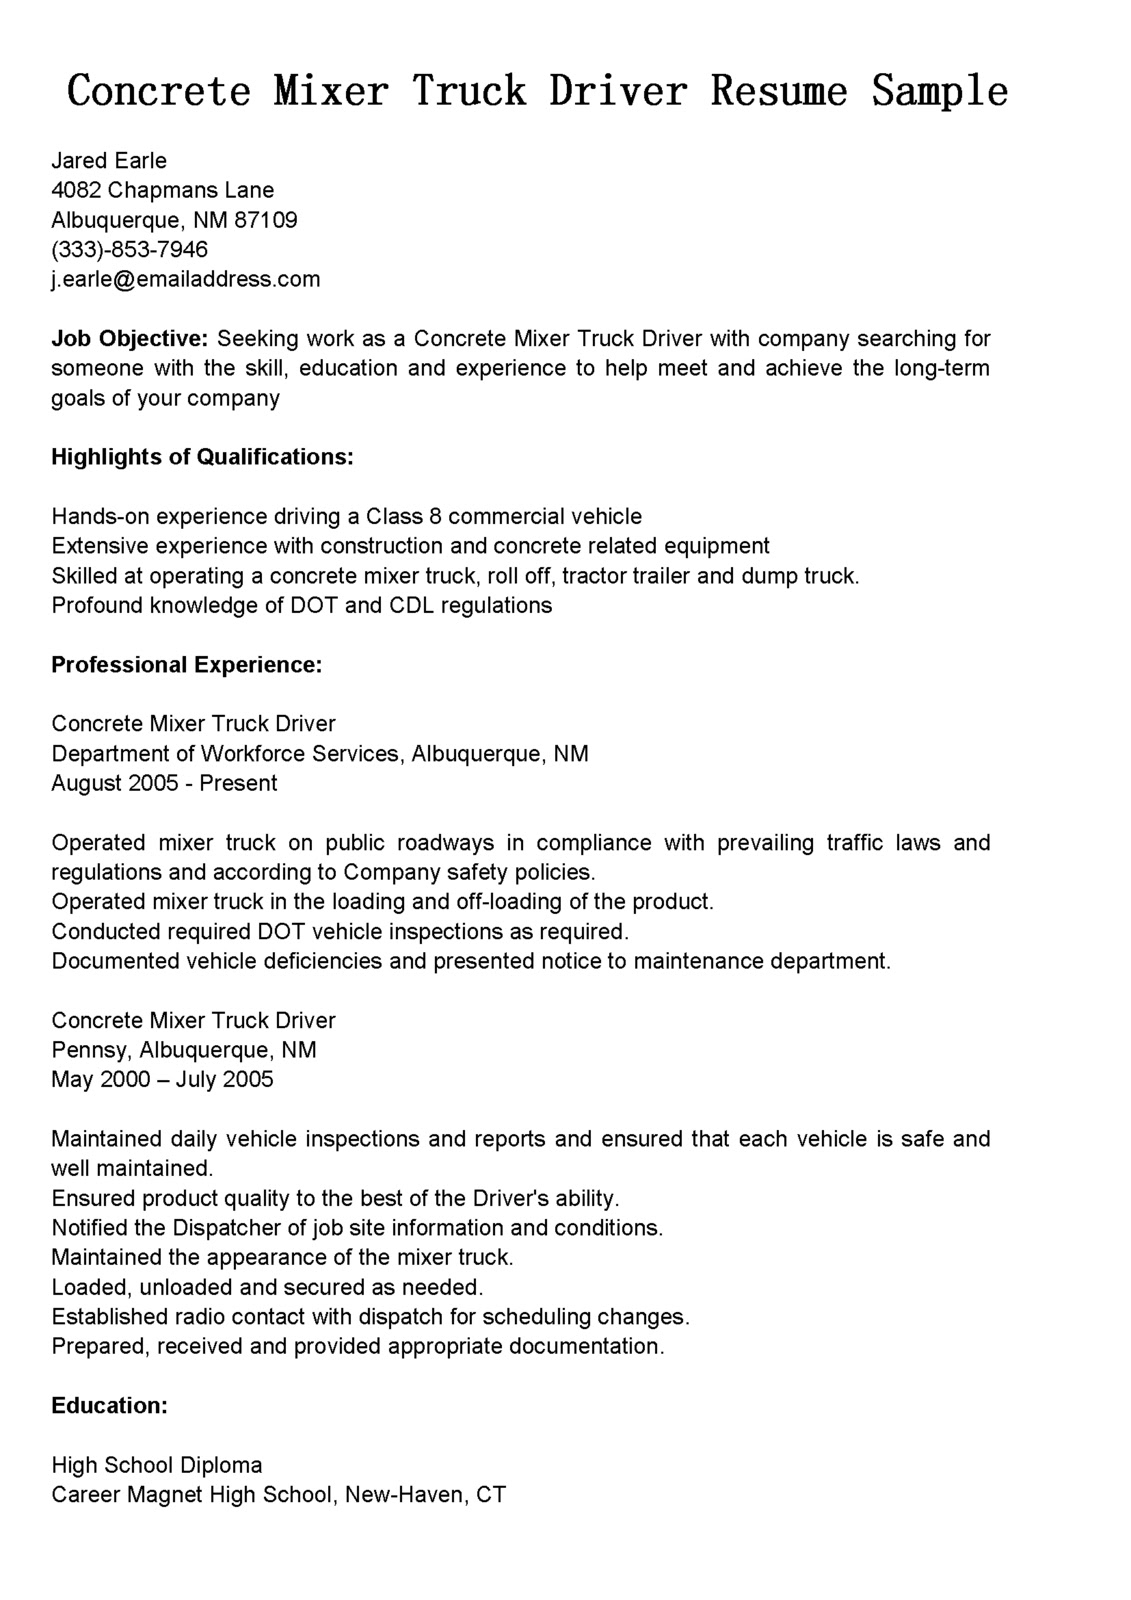 Resume For A Driver Concrete Mixer Truck Driver Resume Myideasbedroom